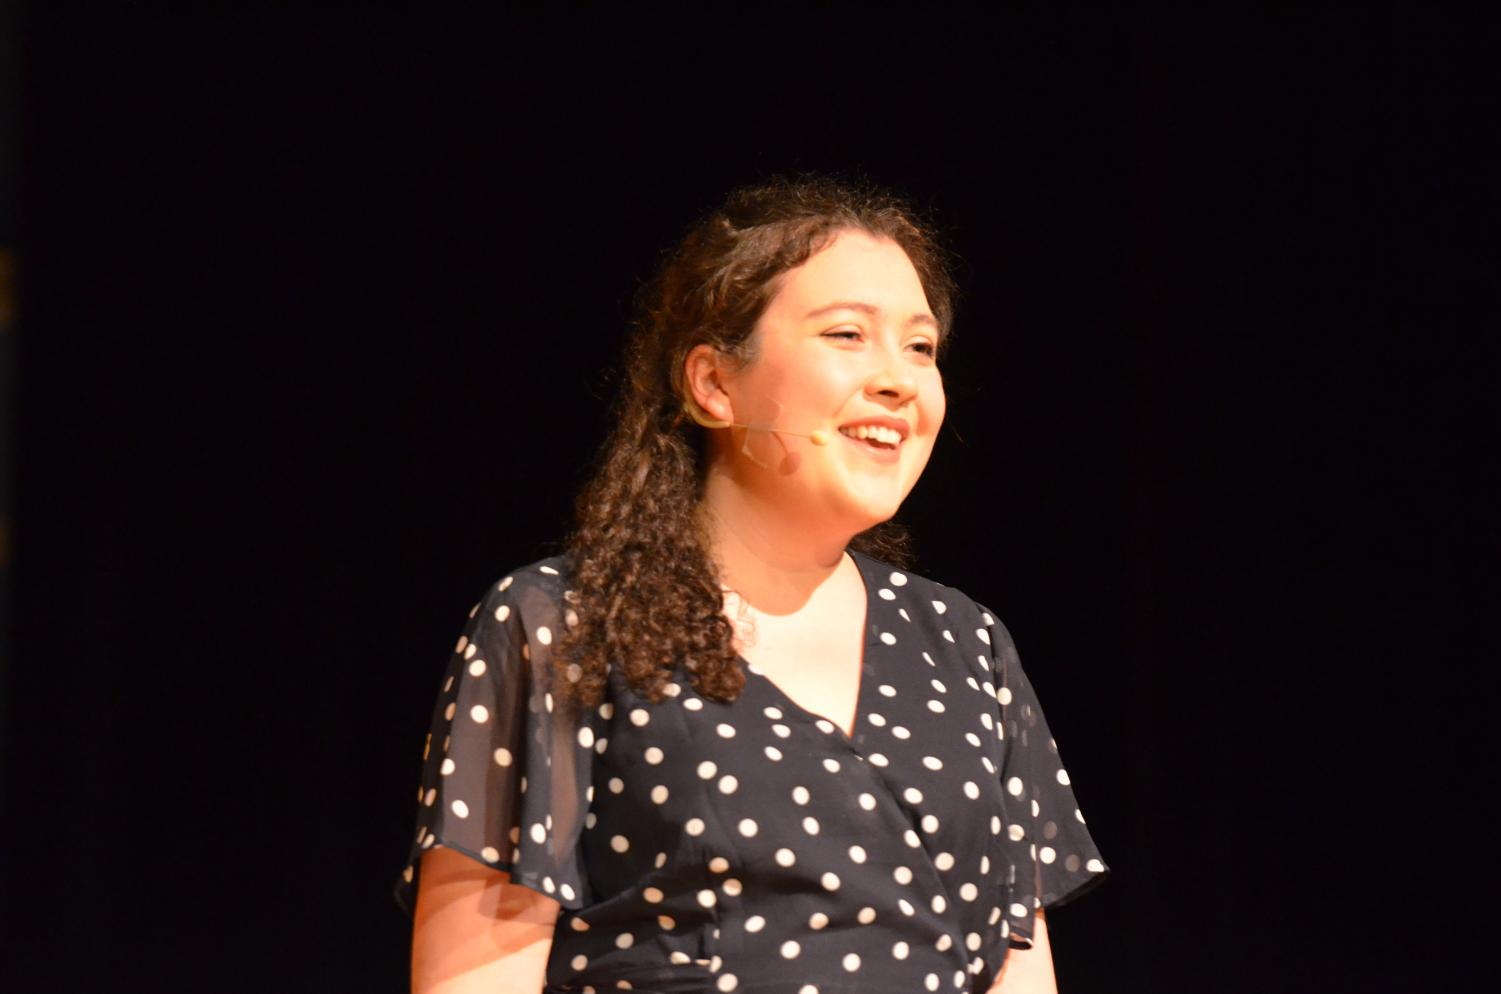 Senior+Hannah+Gampe+performed+the+role+of+Rosemary+to+great+reviews+in+the+TAHS+production+of+How+to+Succeed+in+Business+Without+Really+Trying.++